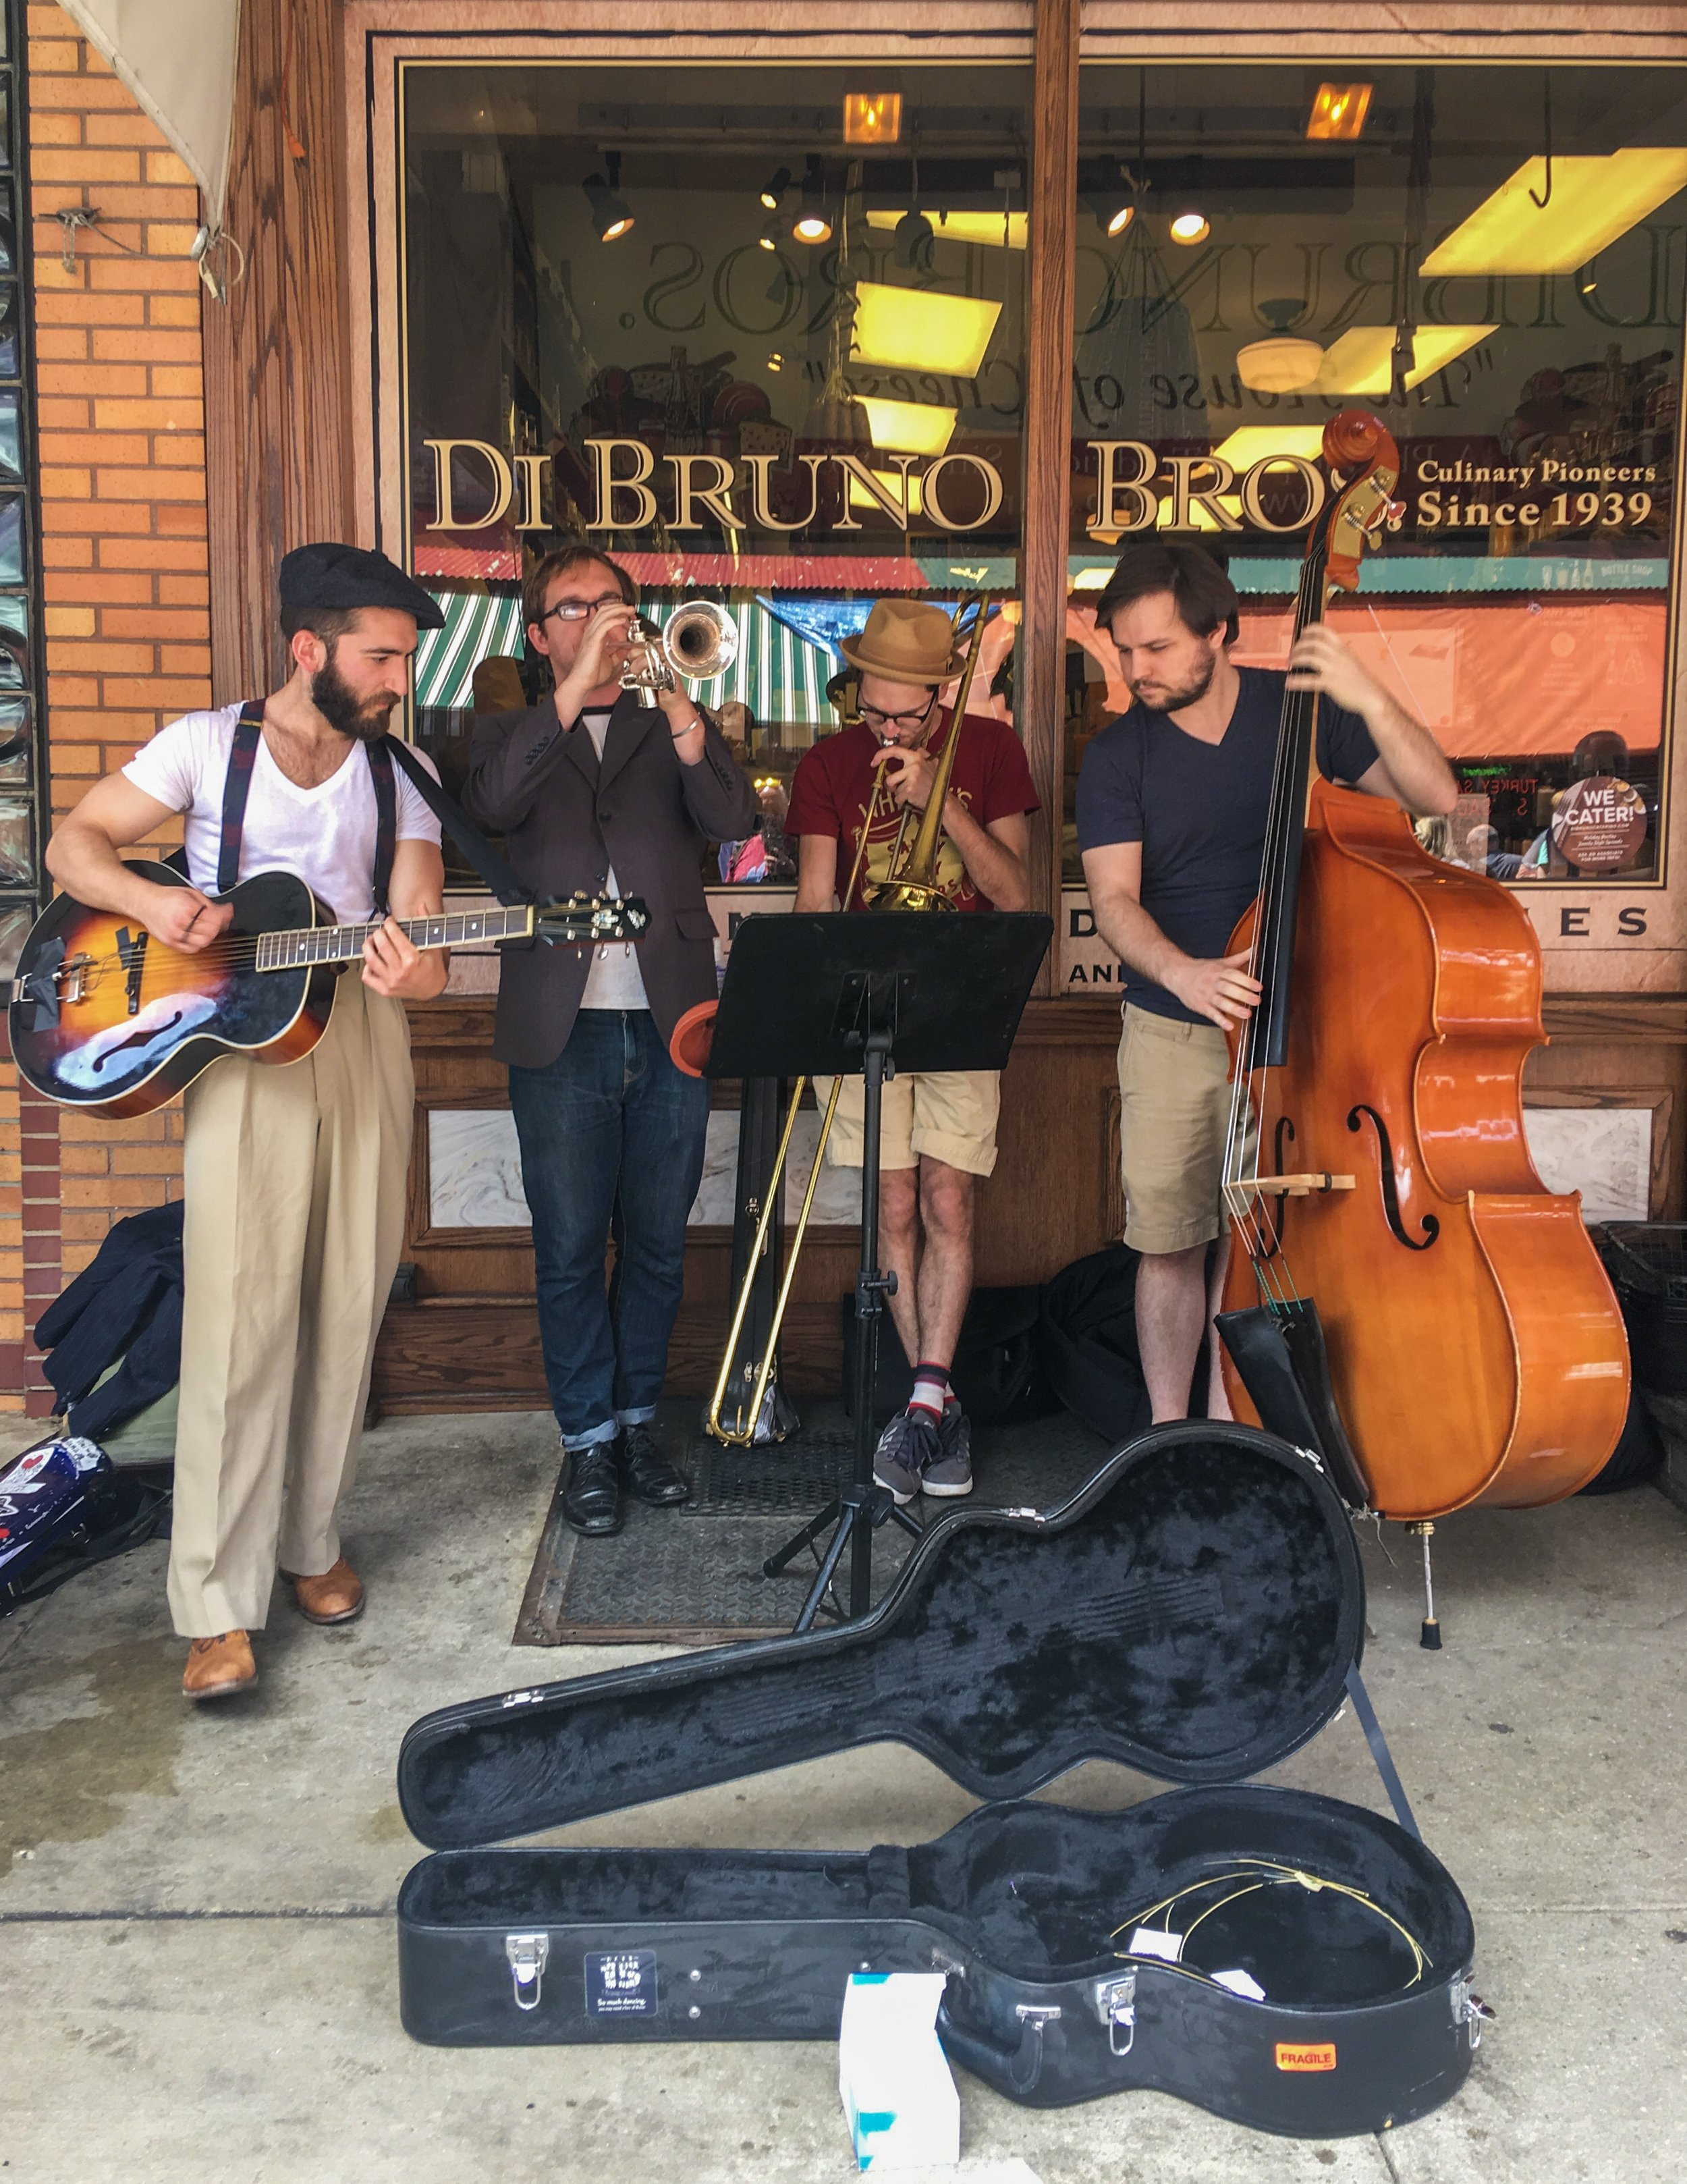 Buskers outside of DiBruno Brothers